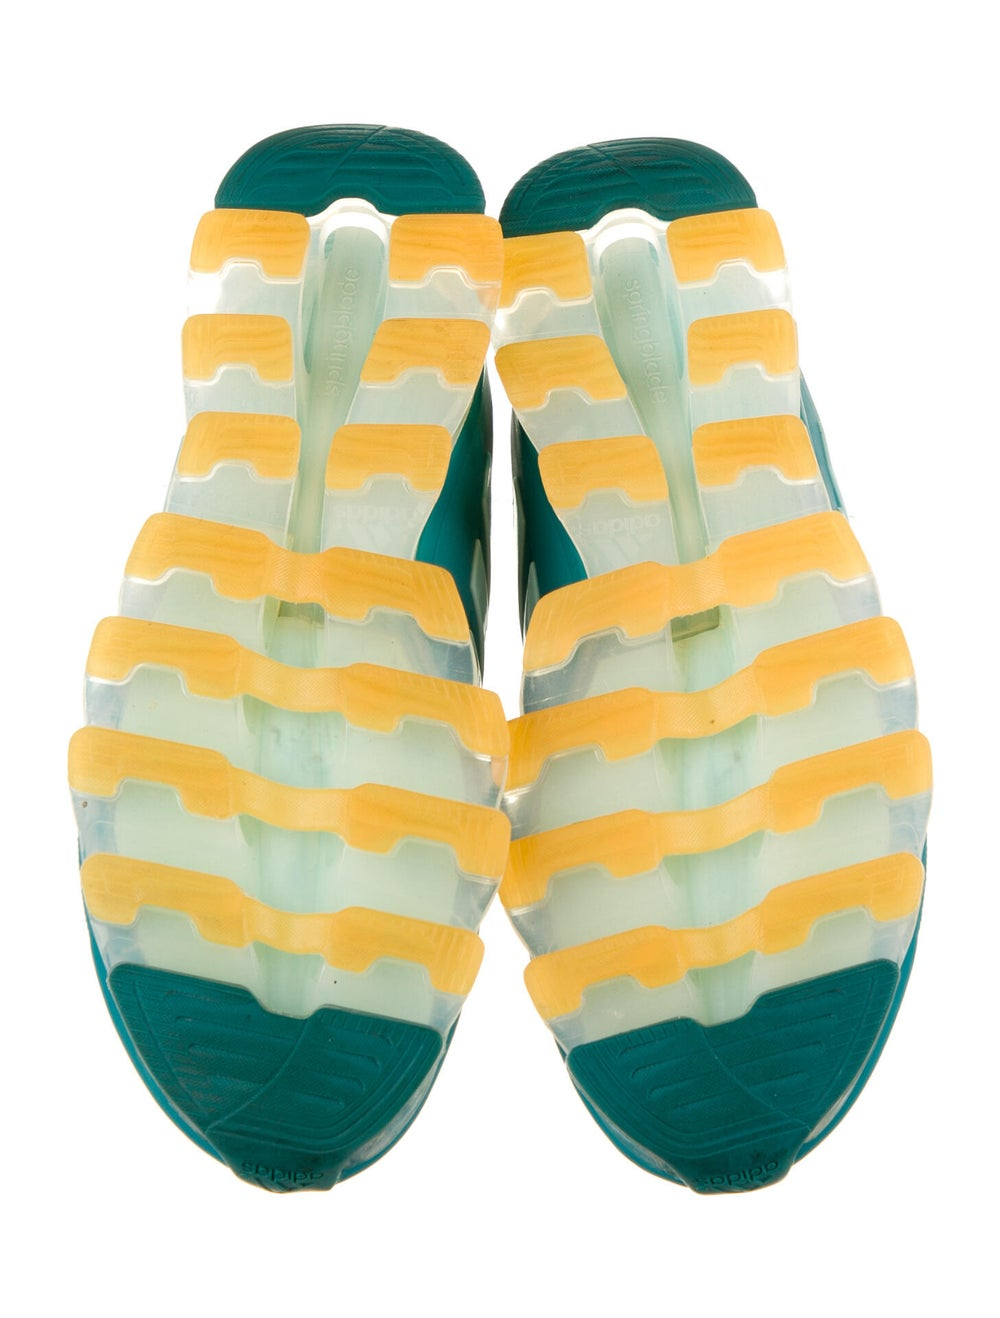 Adidas Springblade Drive Athletic Sneakers Green - image 5